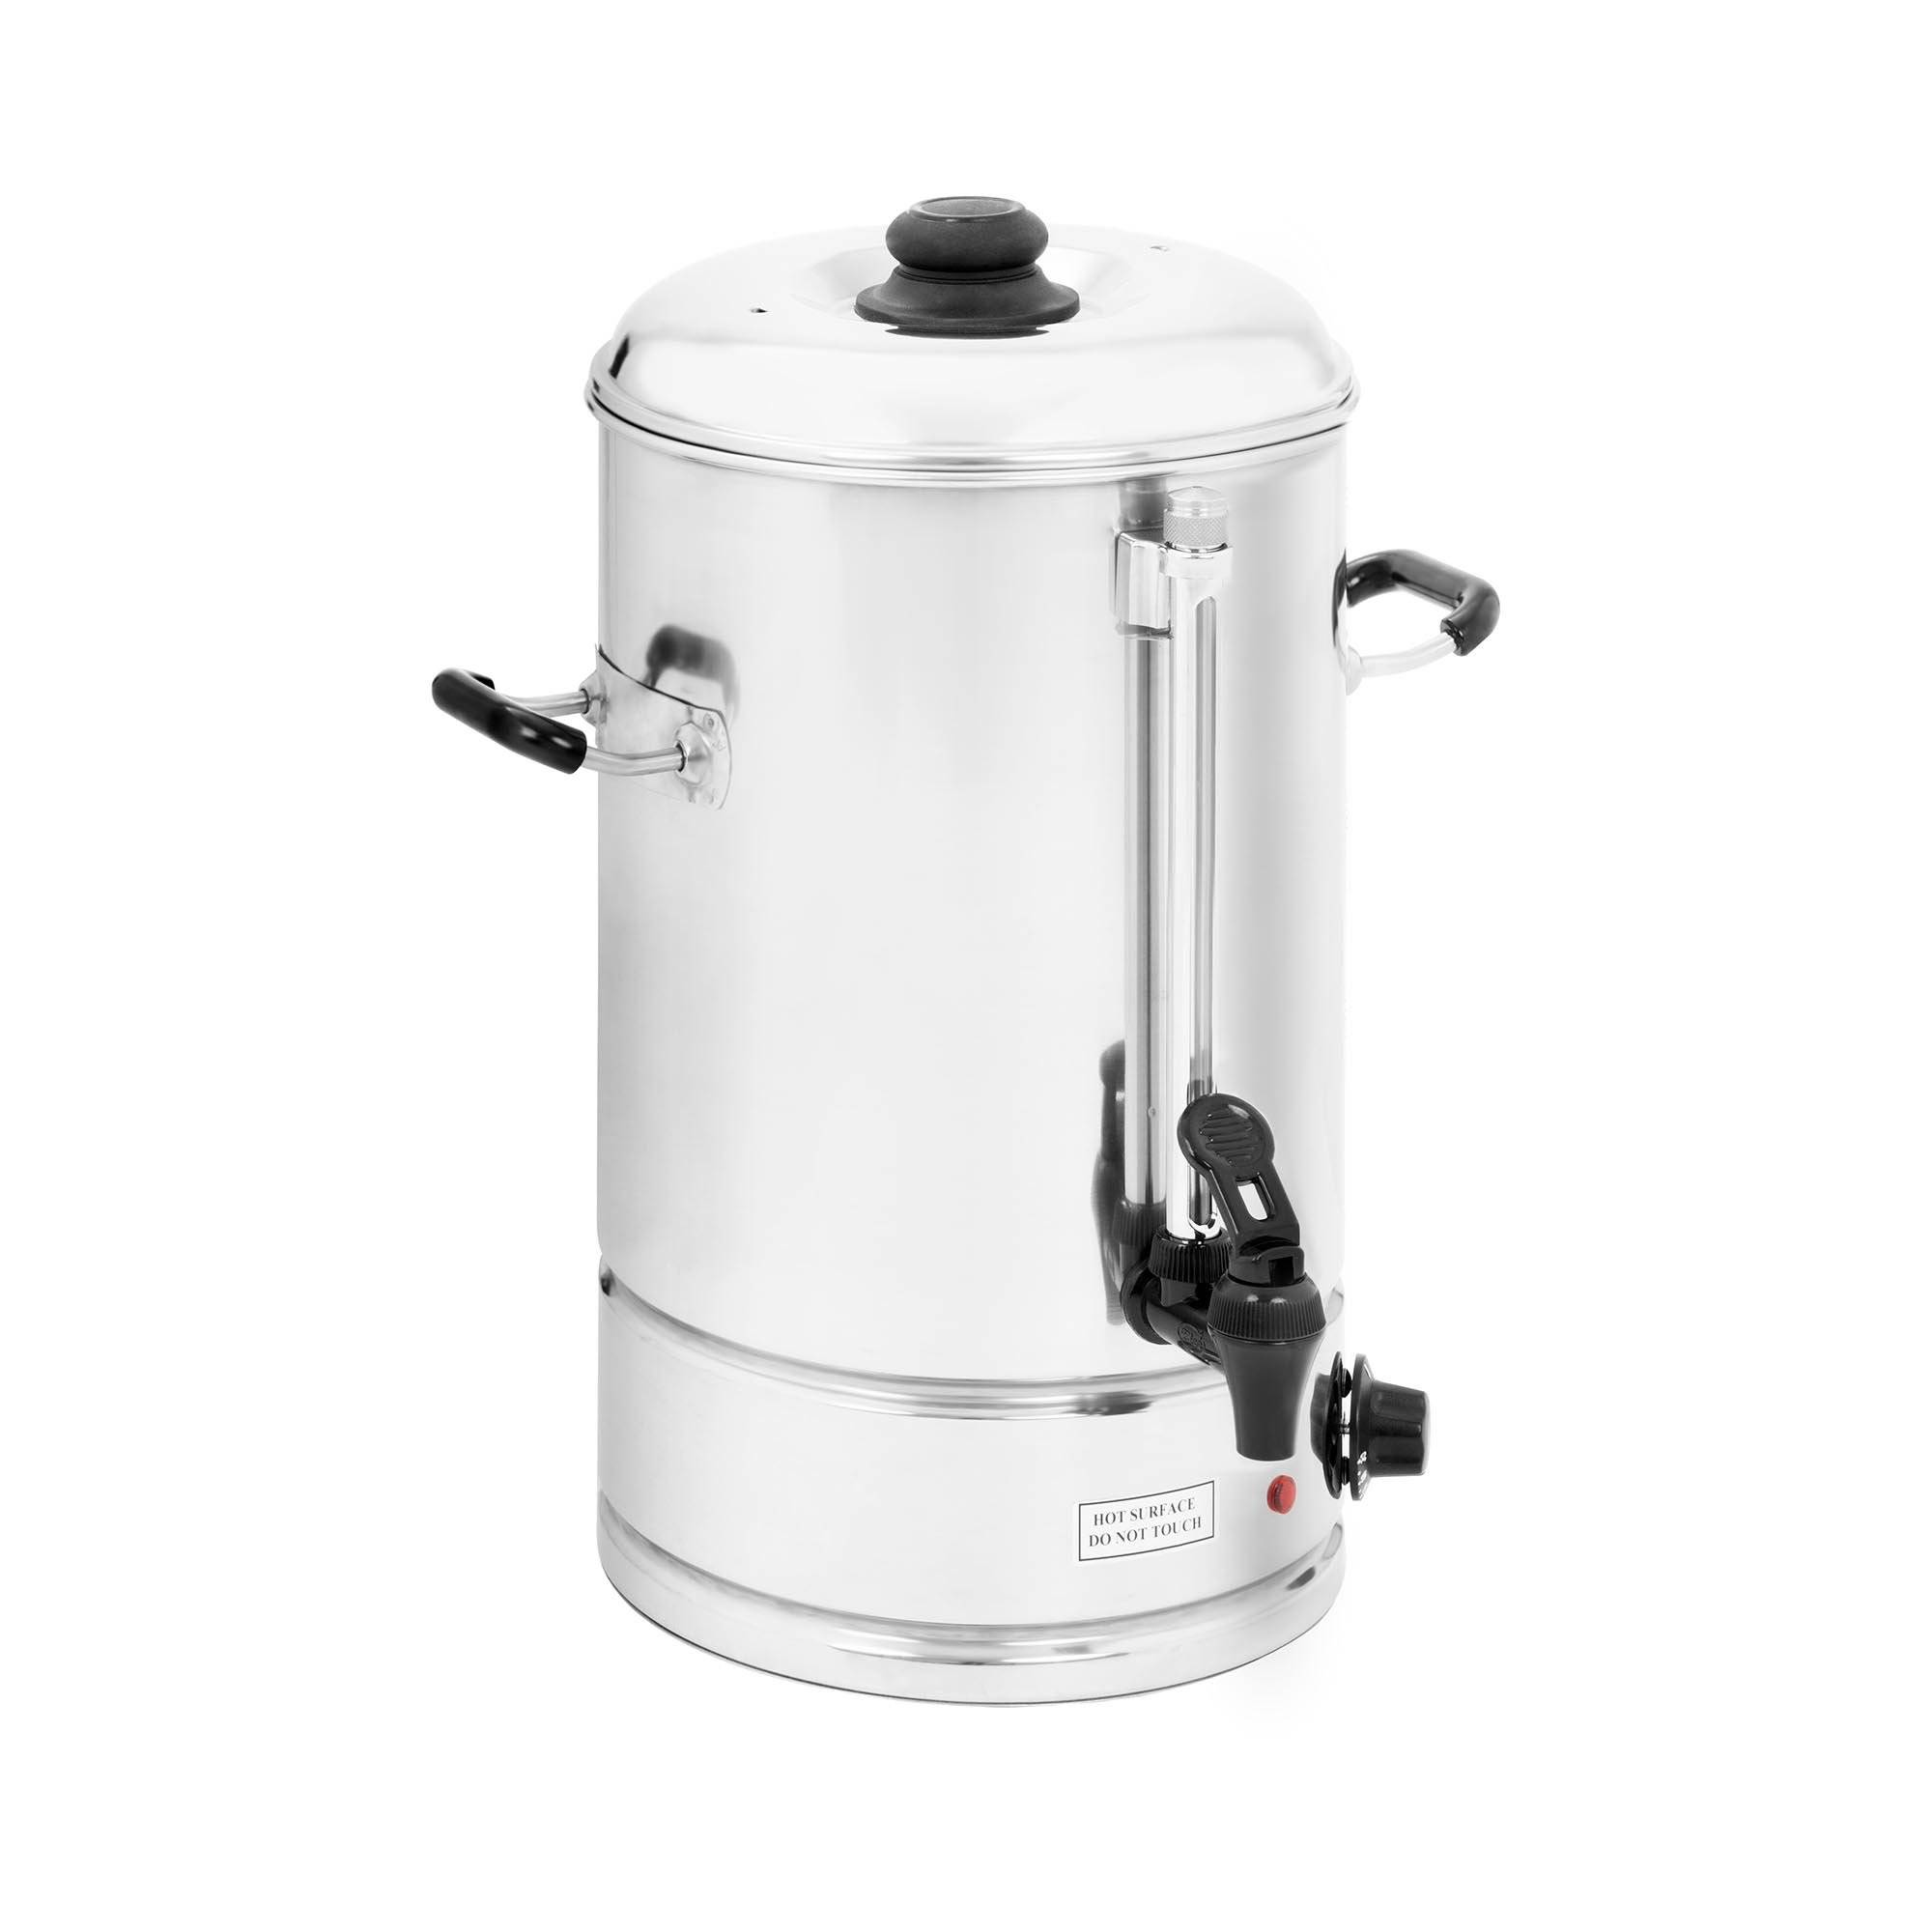 Royal Catering Commercial Hot Water Dispenser - 10 Litres